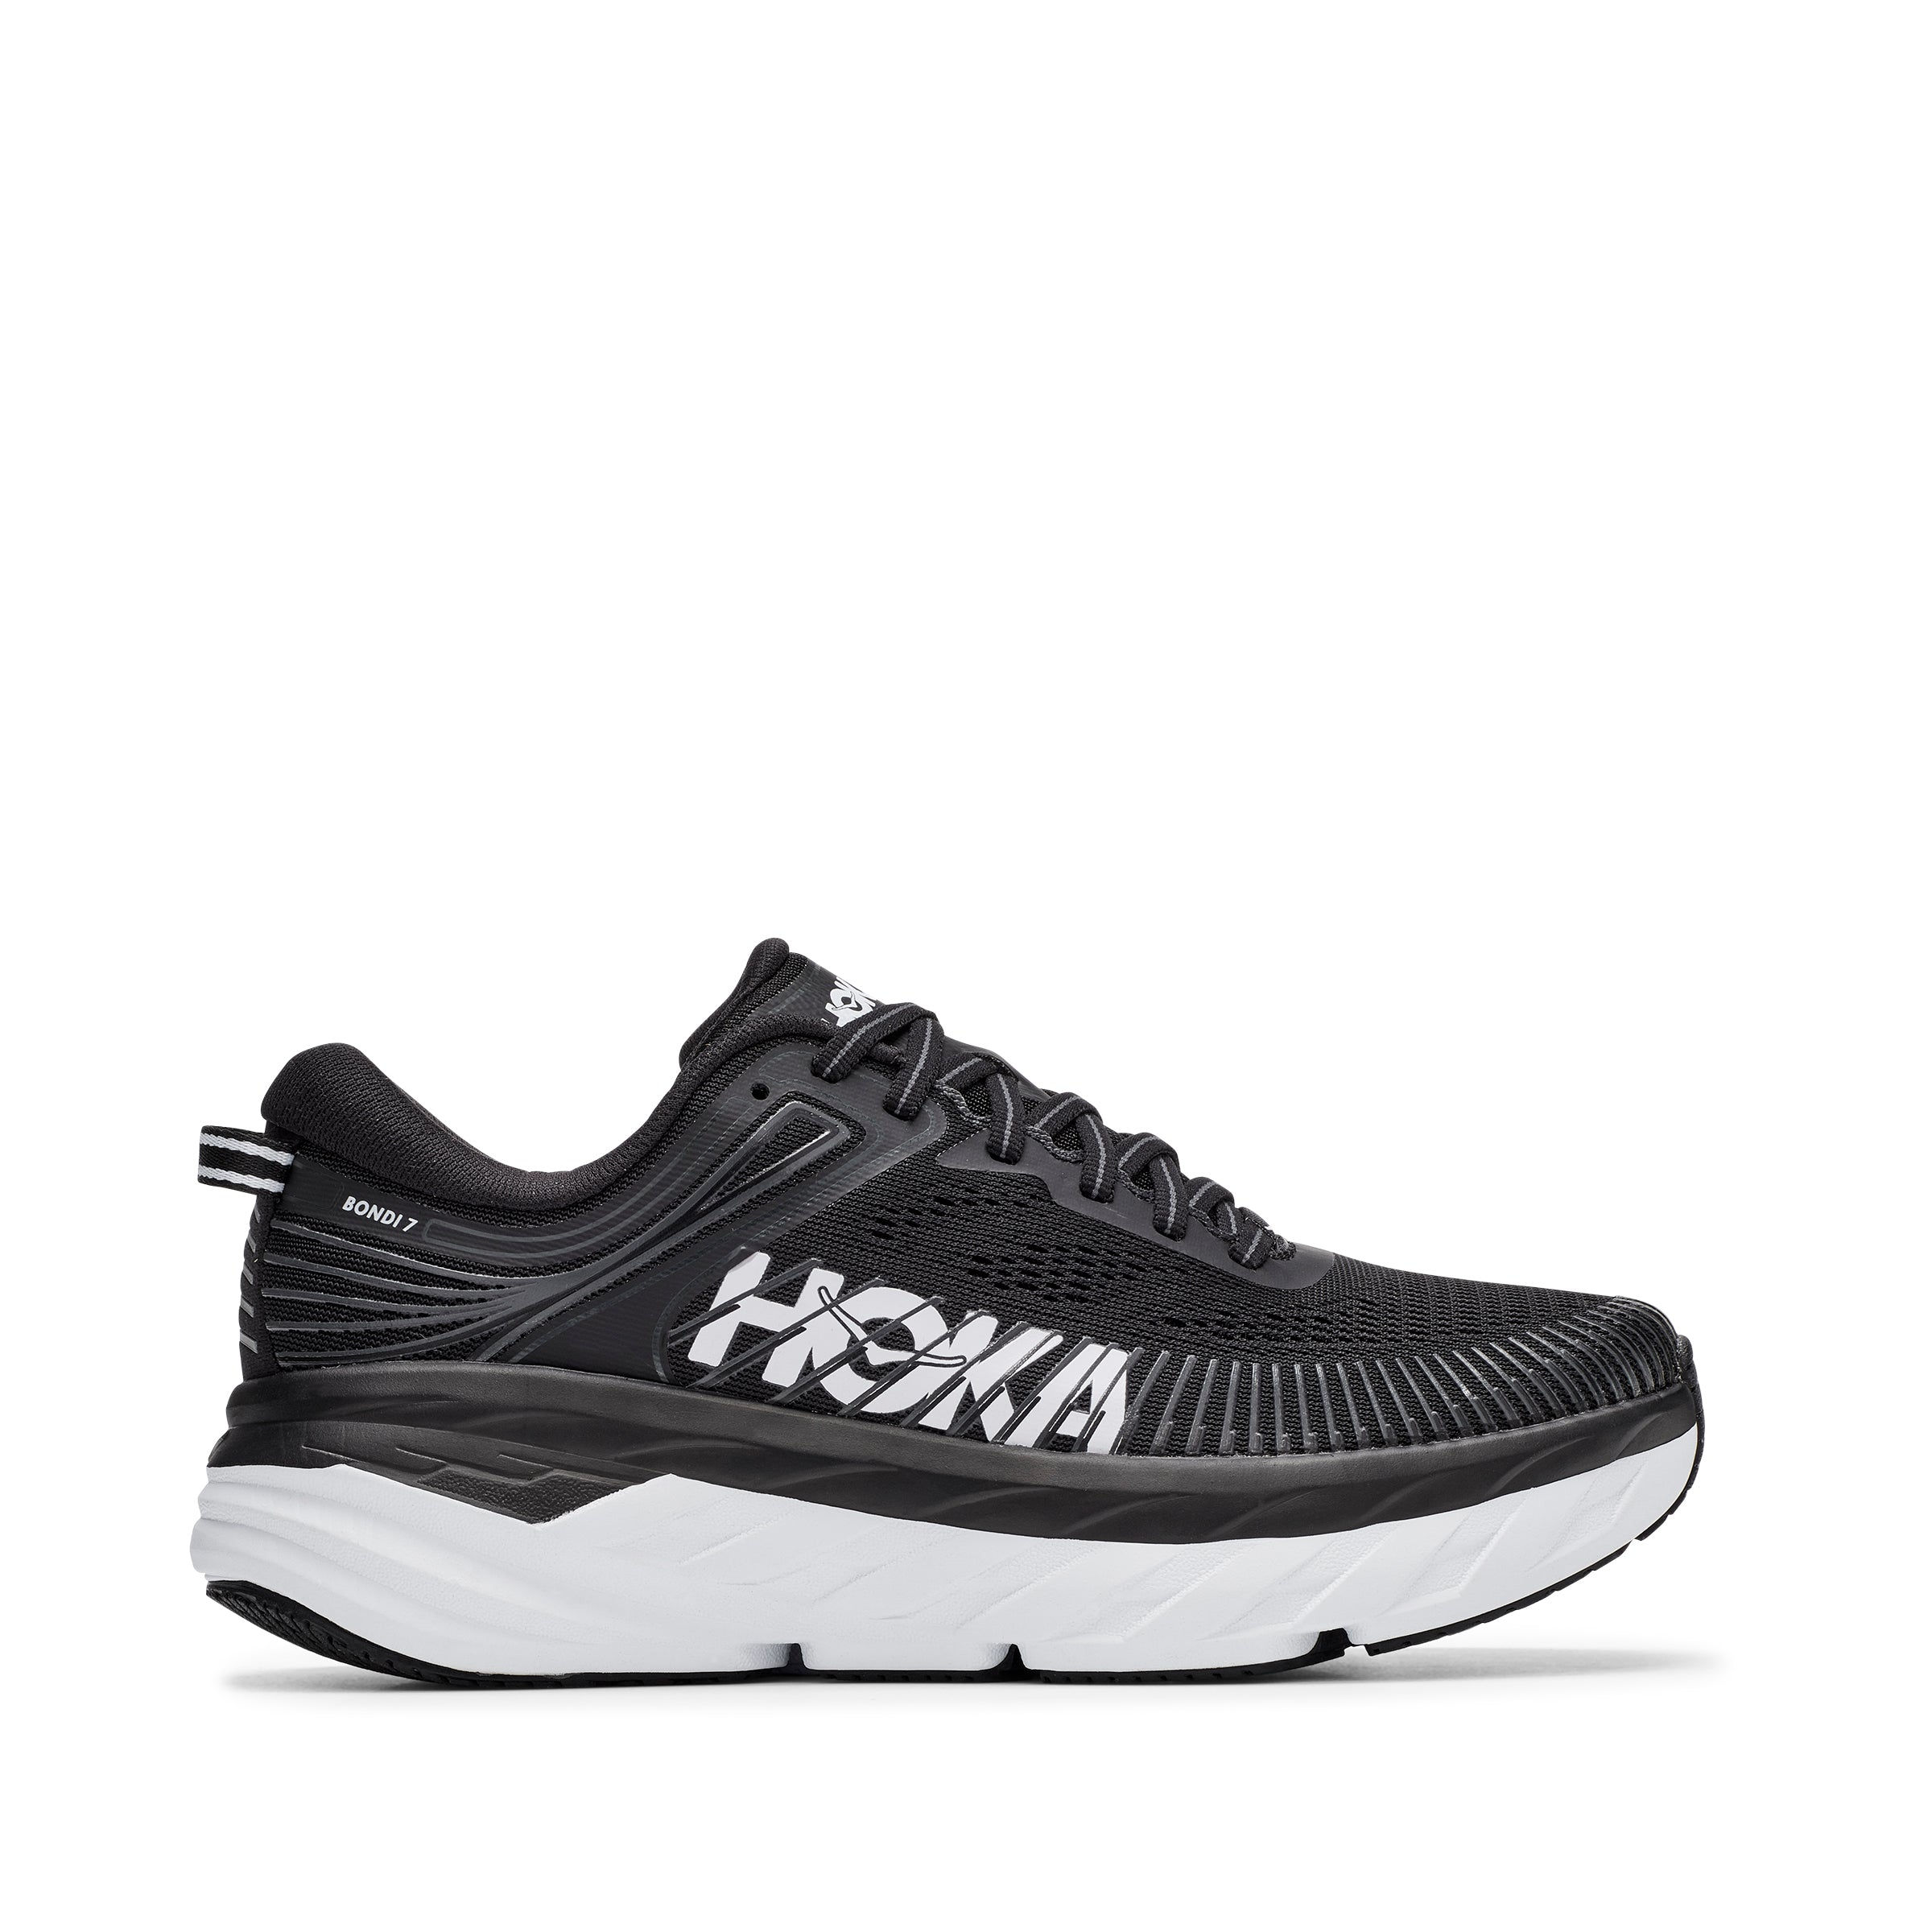 Women's Bondi 7 (BWHT - black/white)